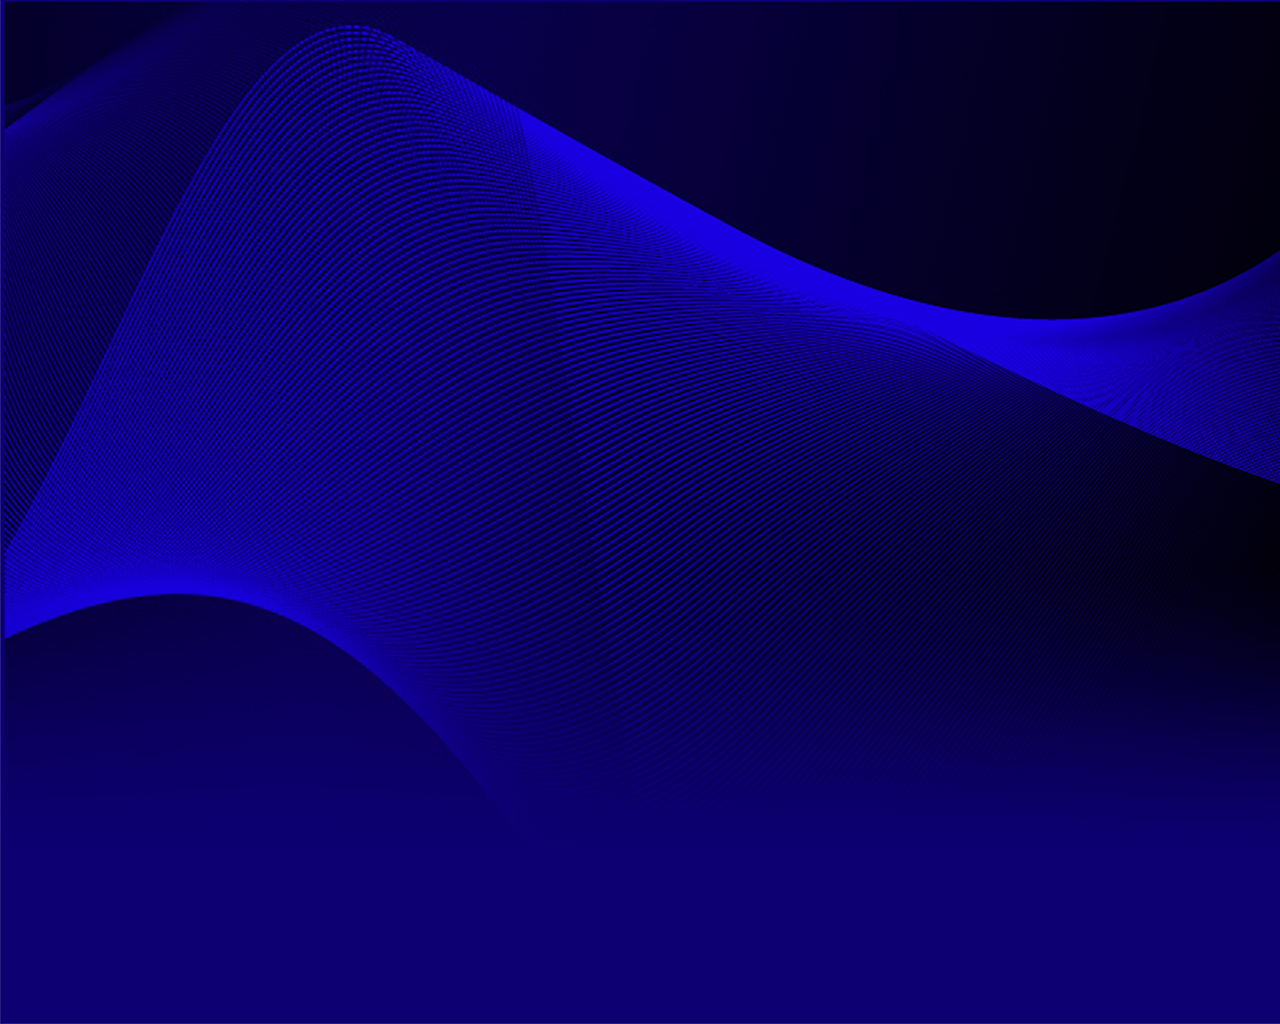 76 Royal Blue Backgrounds On Wallpapersafari